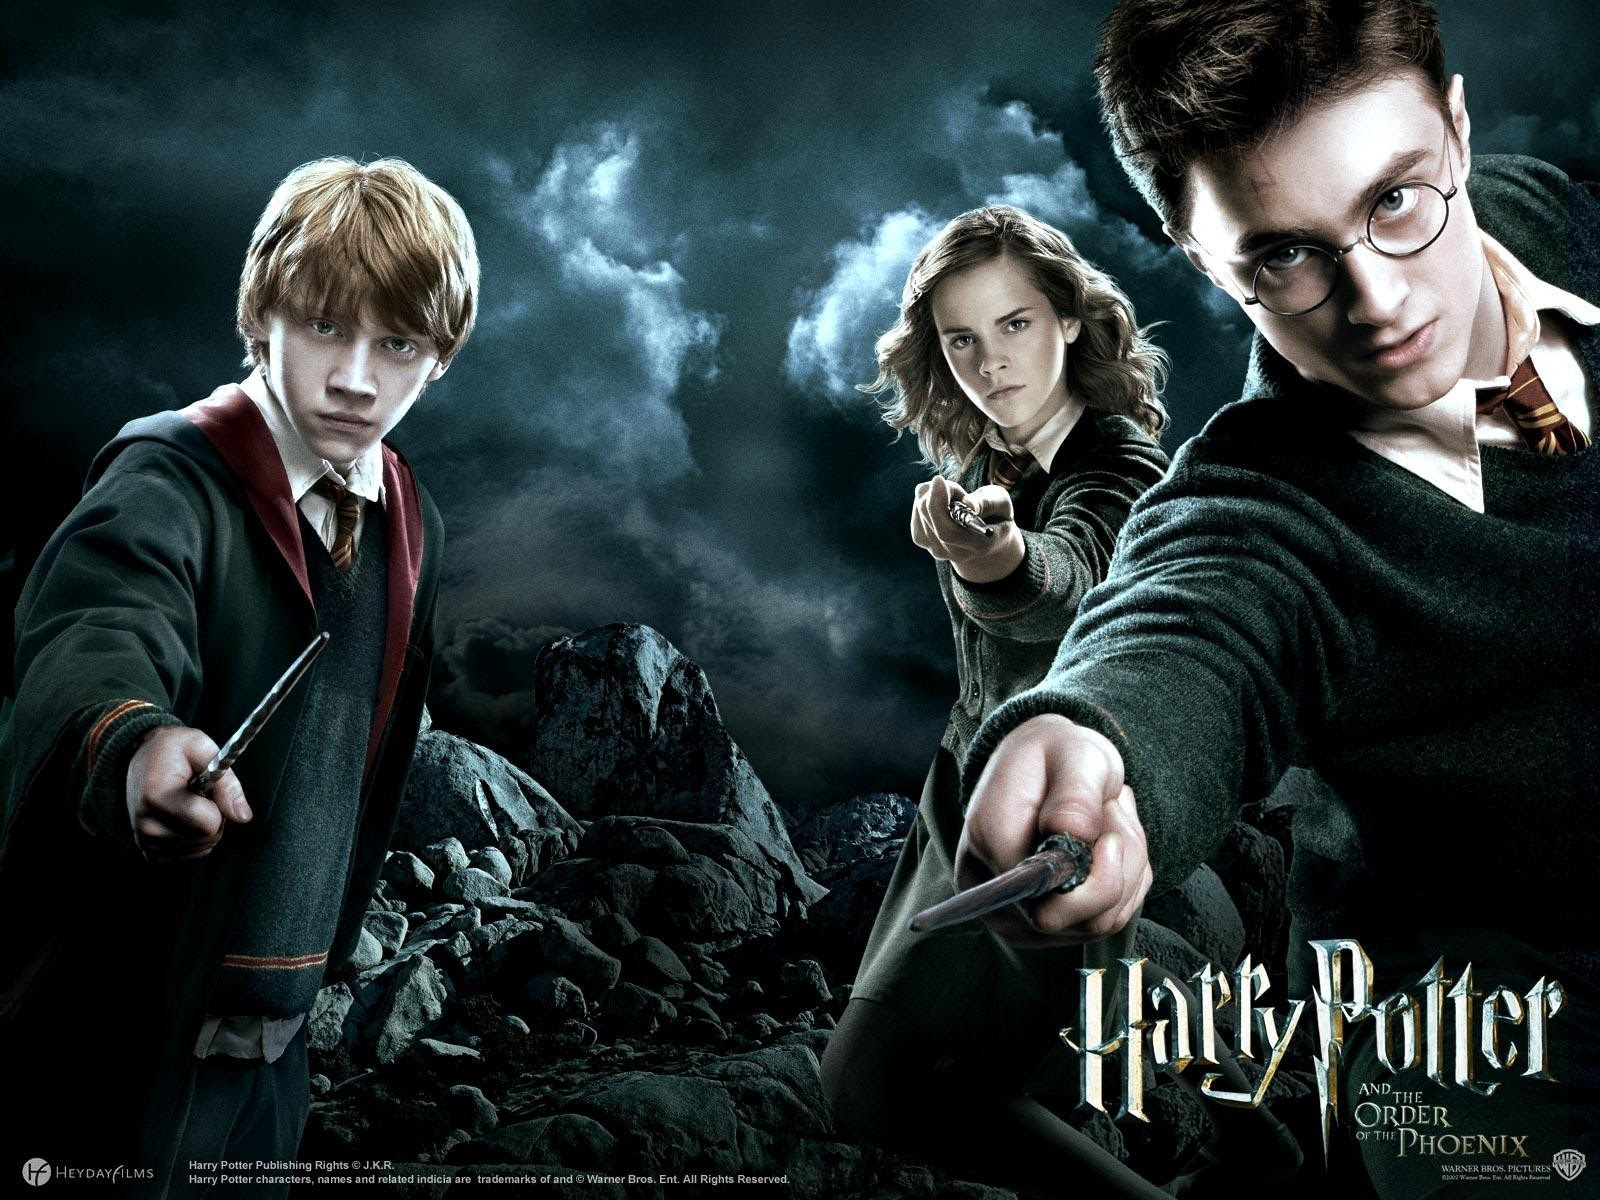 Harry Potter And The Order Of The Phoenix Wallpaper High